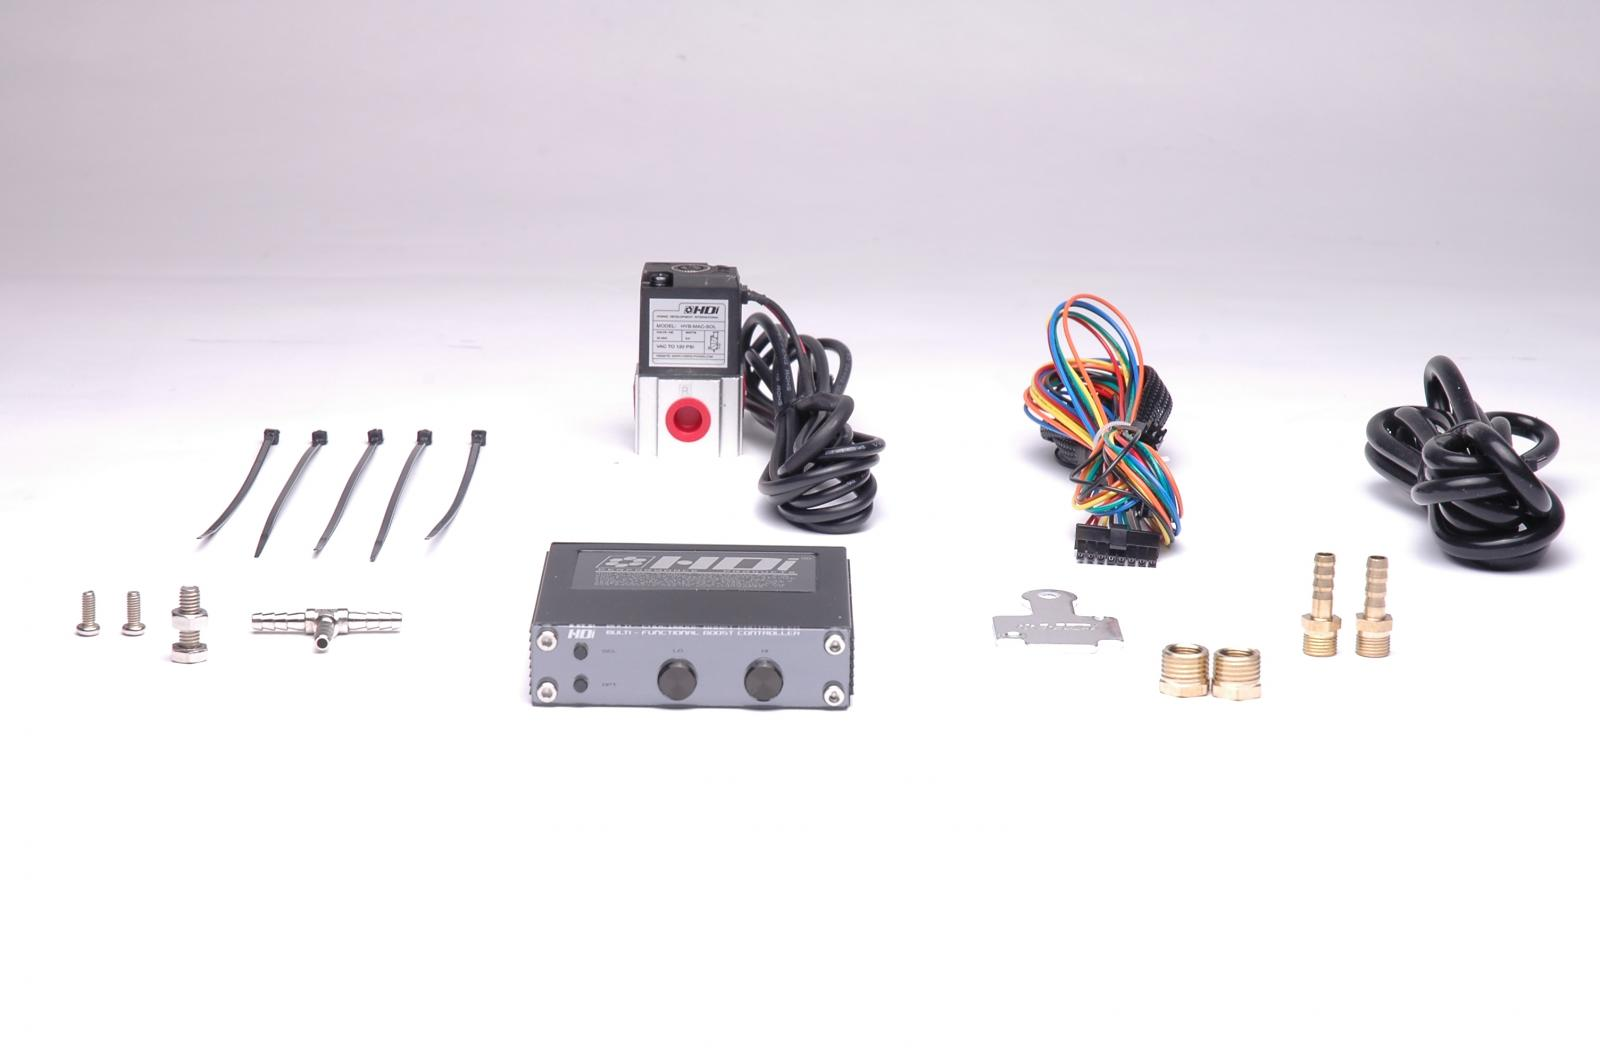 hdi boost controller instructions